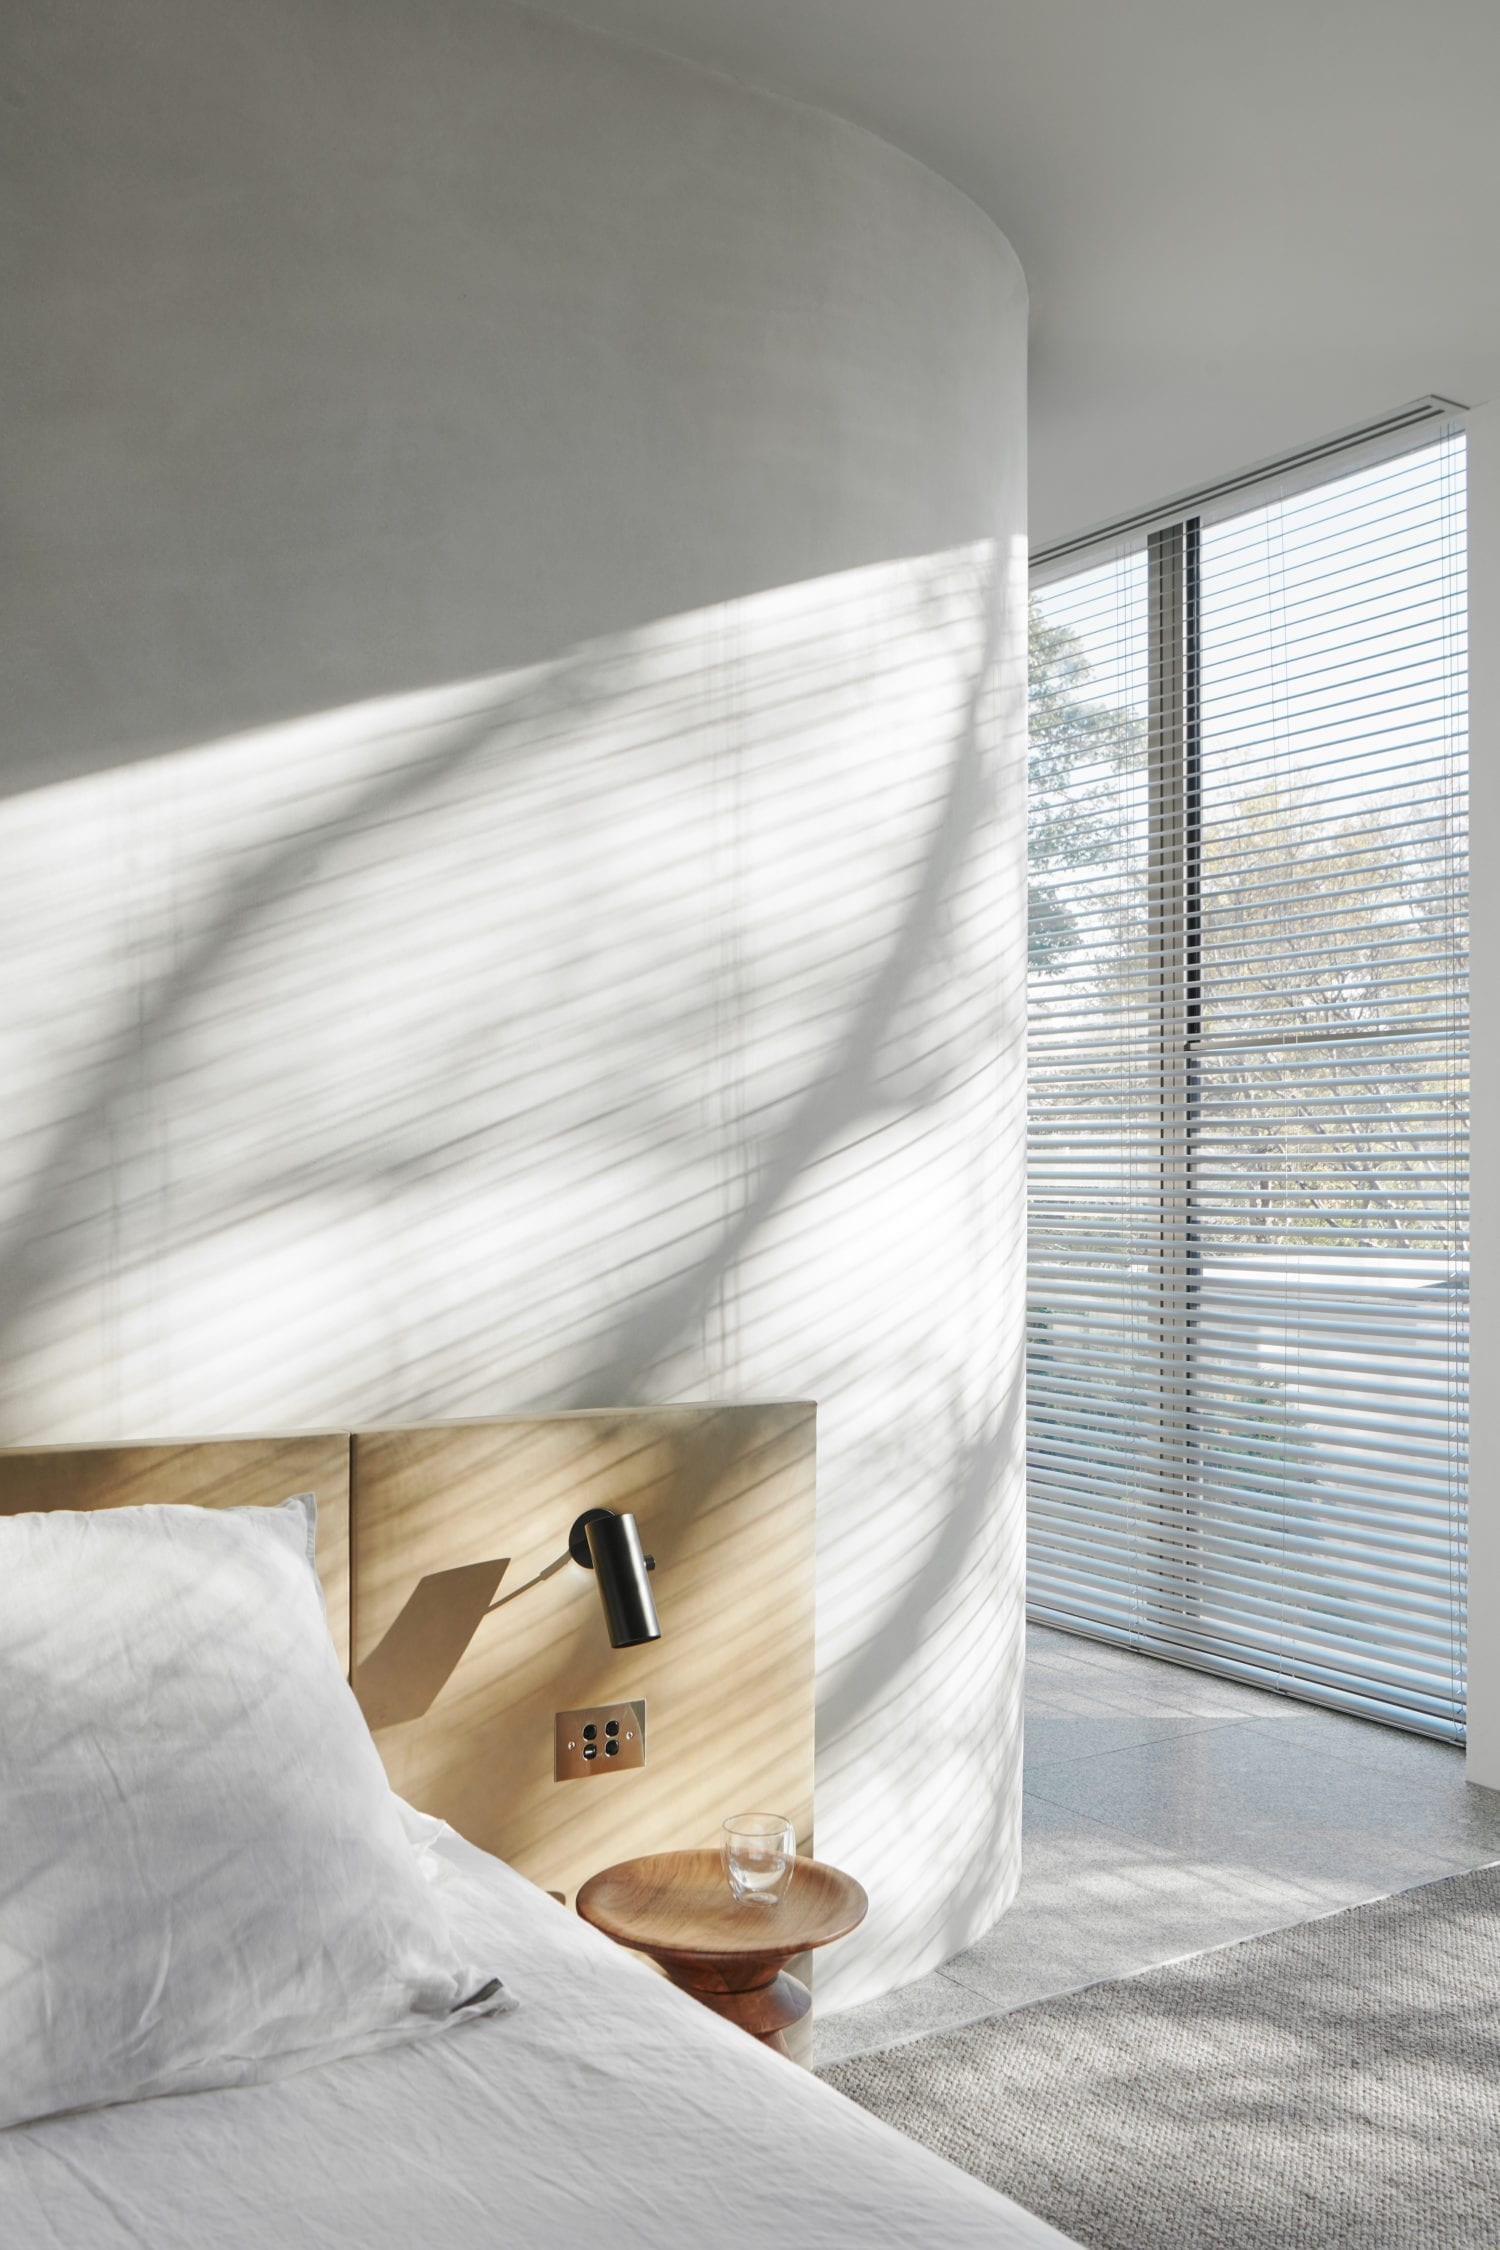 Sld Residence In Toorak Melbourne By Davidov Partners Architects Yellowtrace 17